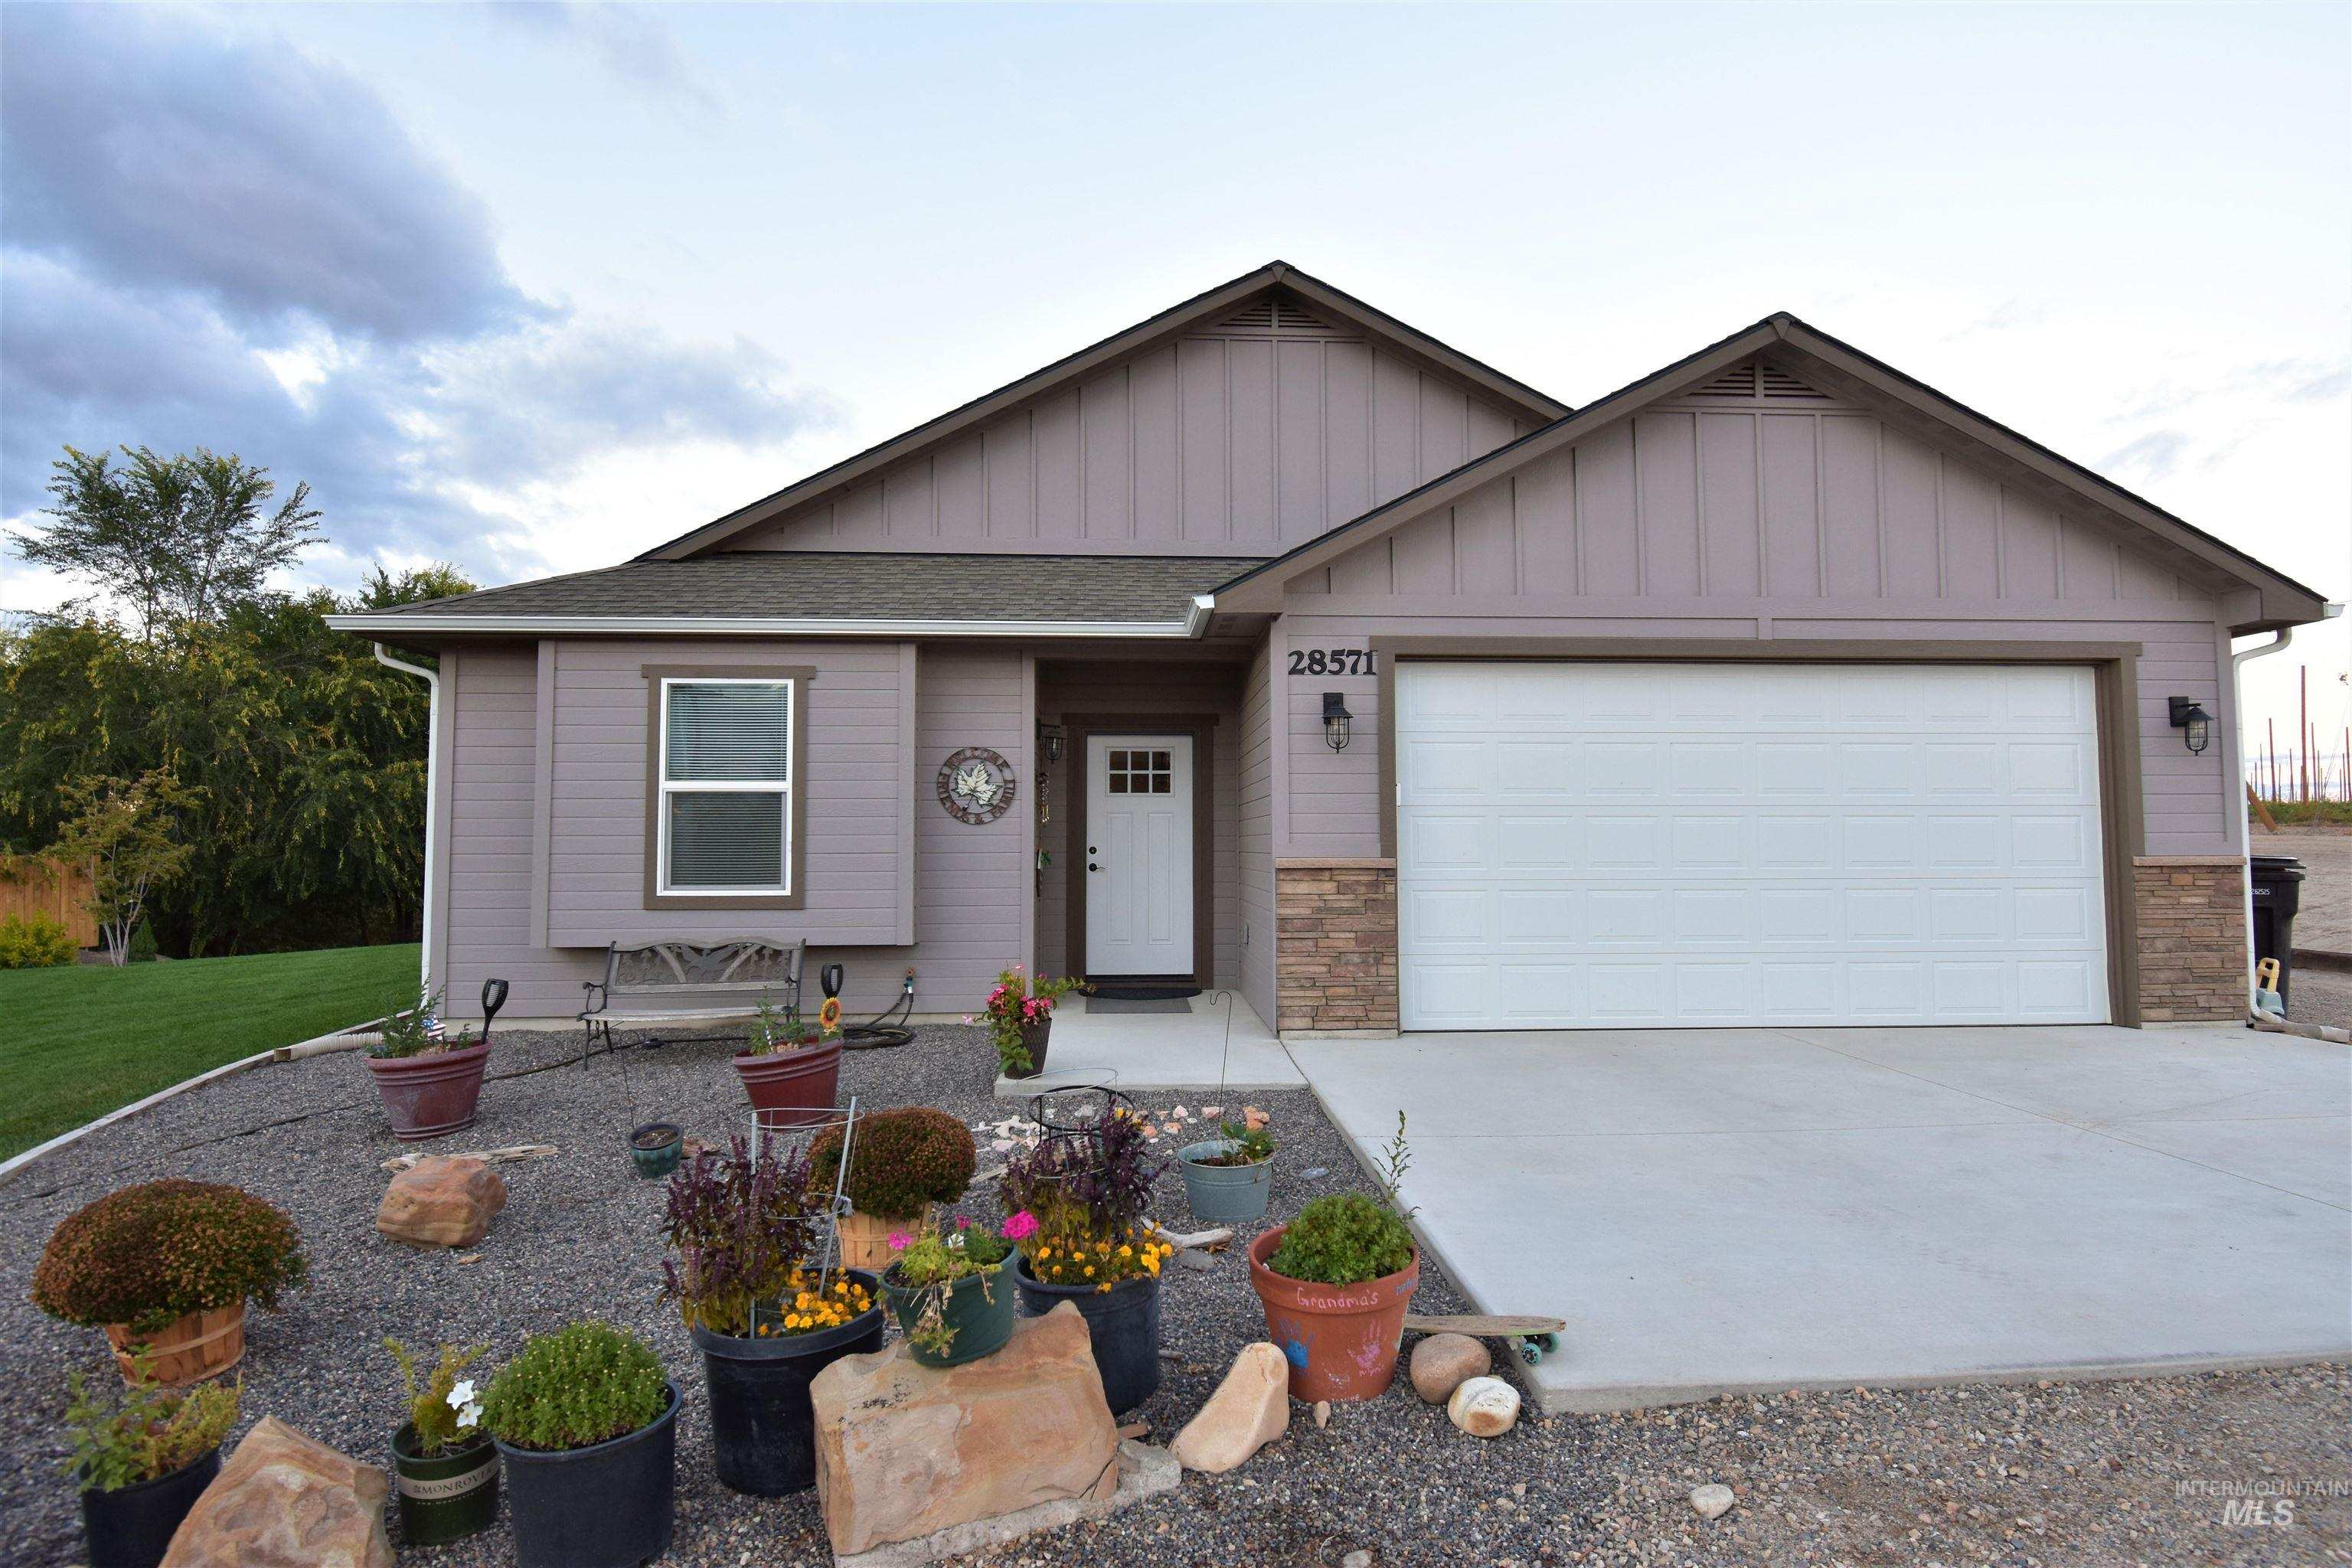 Photo of 28571 Awesome Ln Parma ID 83660